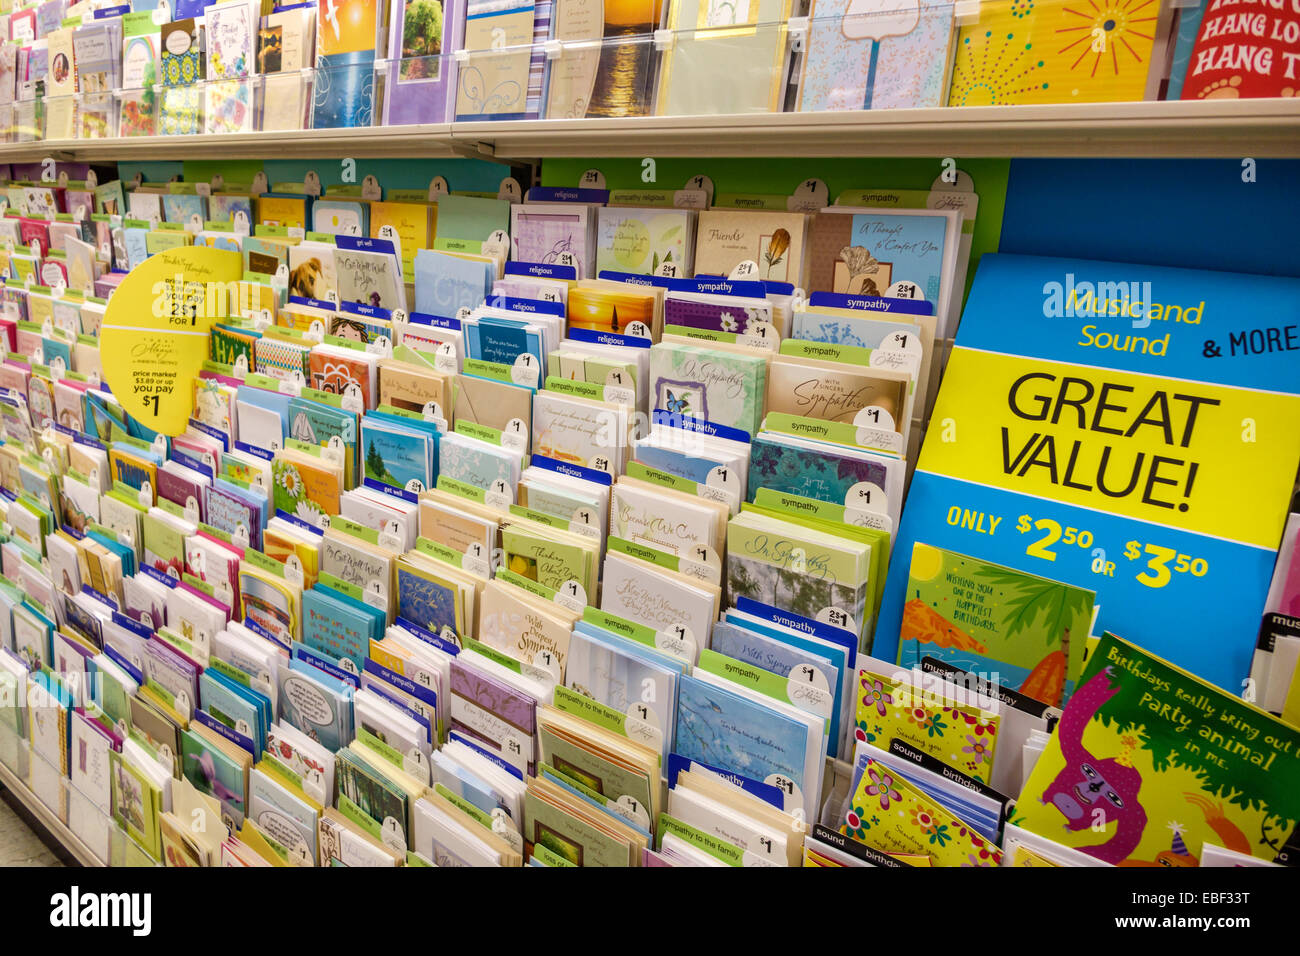 Clermont Florida Dollar General Discount Store Sale Display Greeting Cards